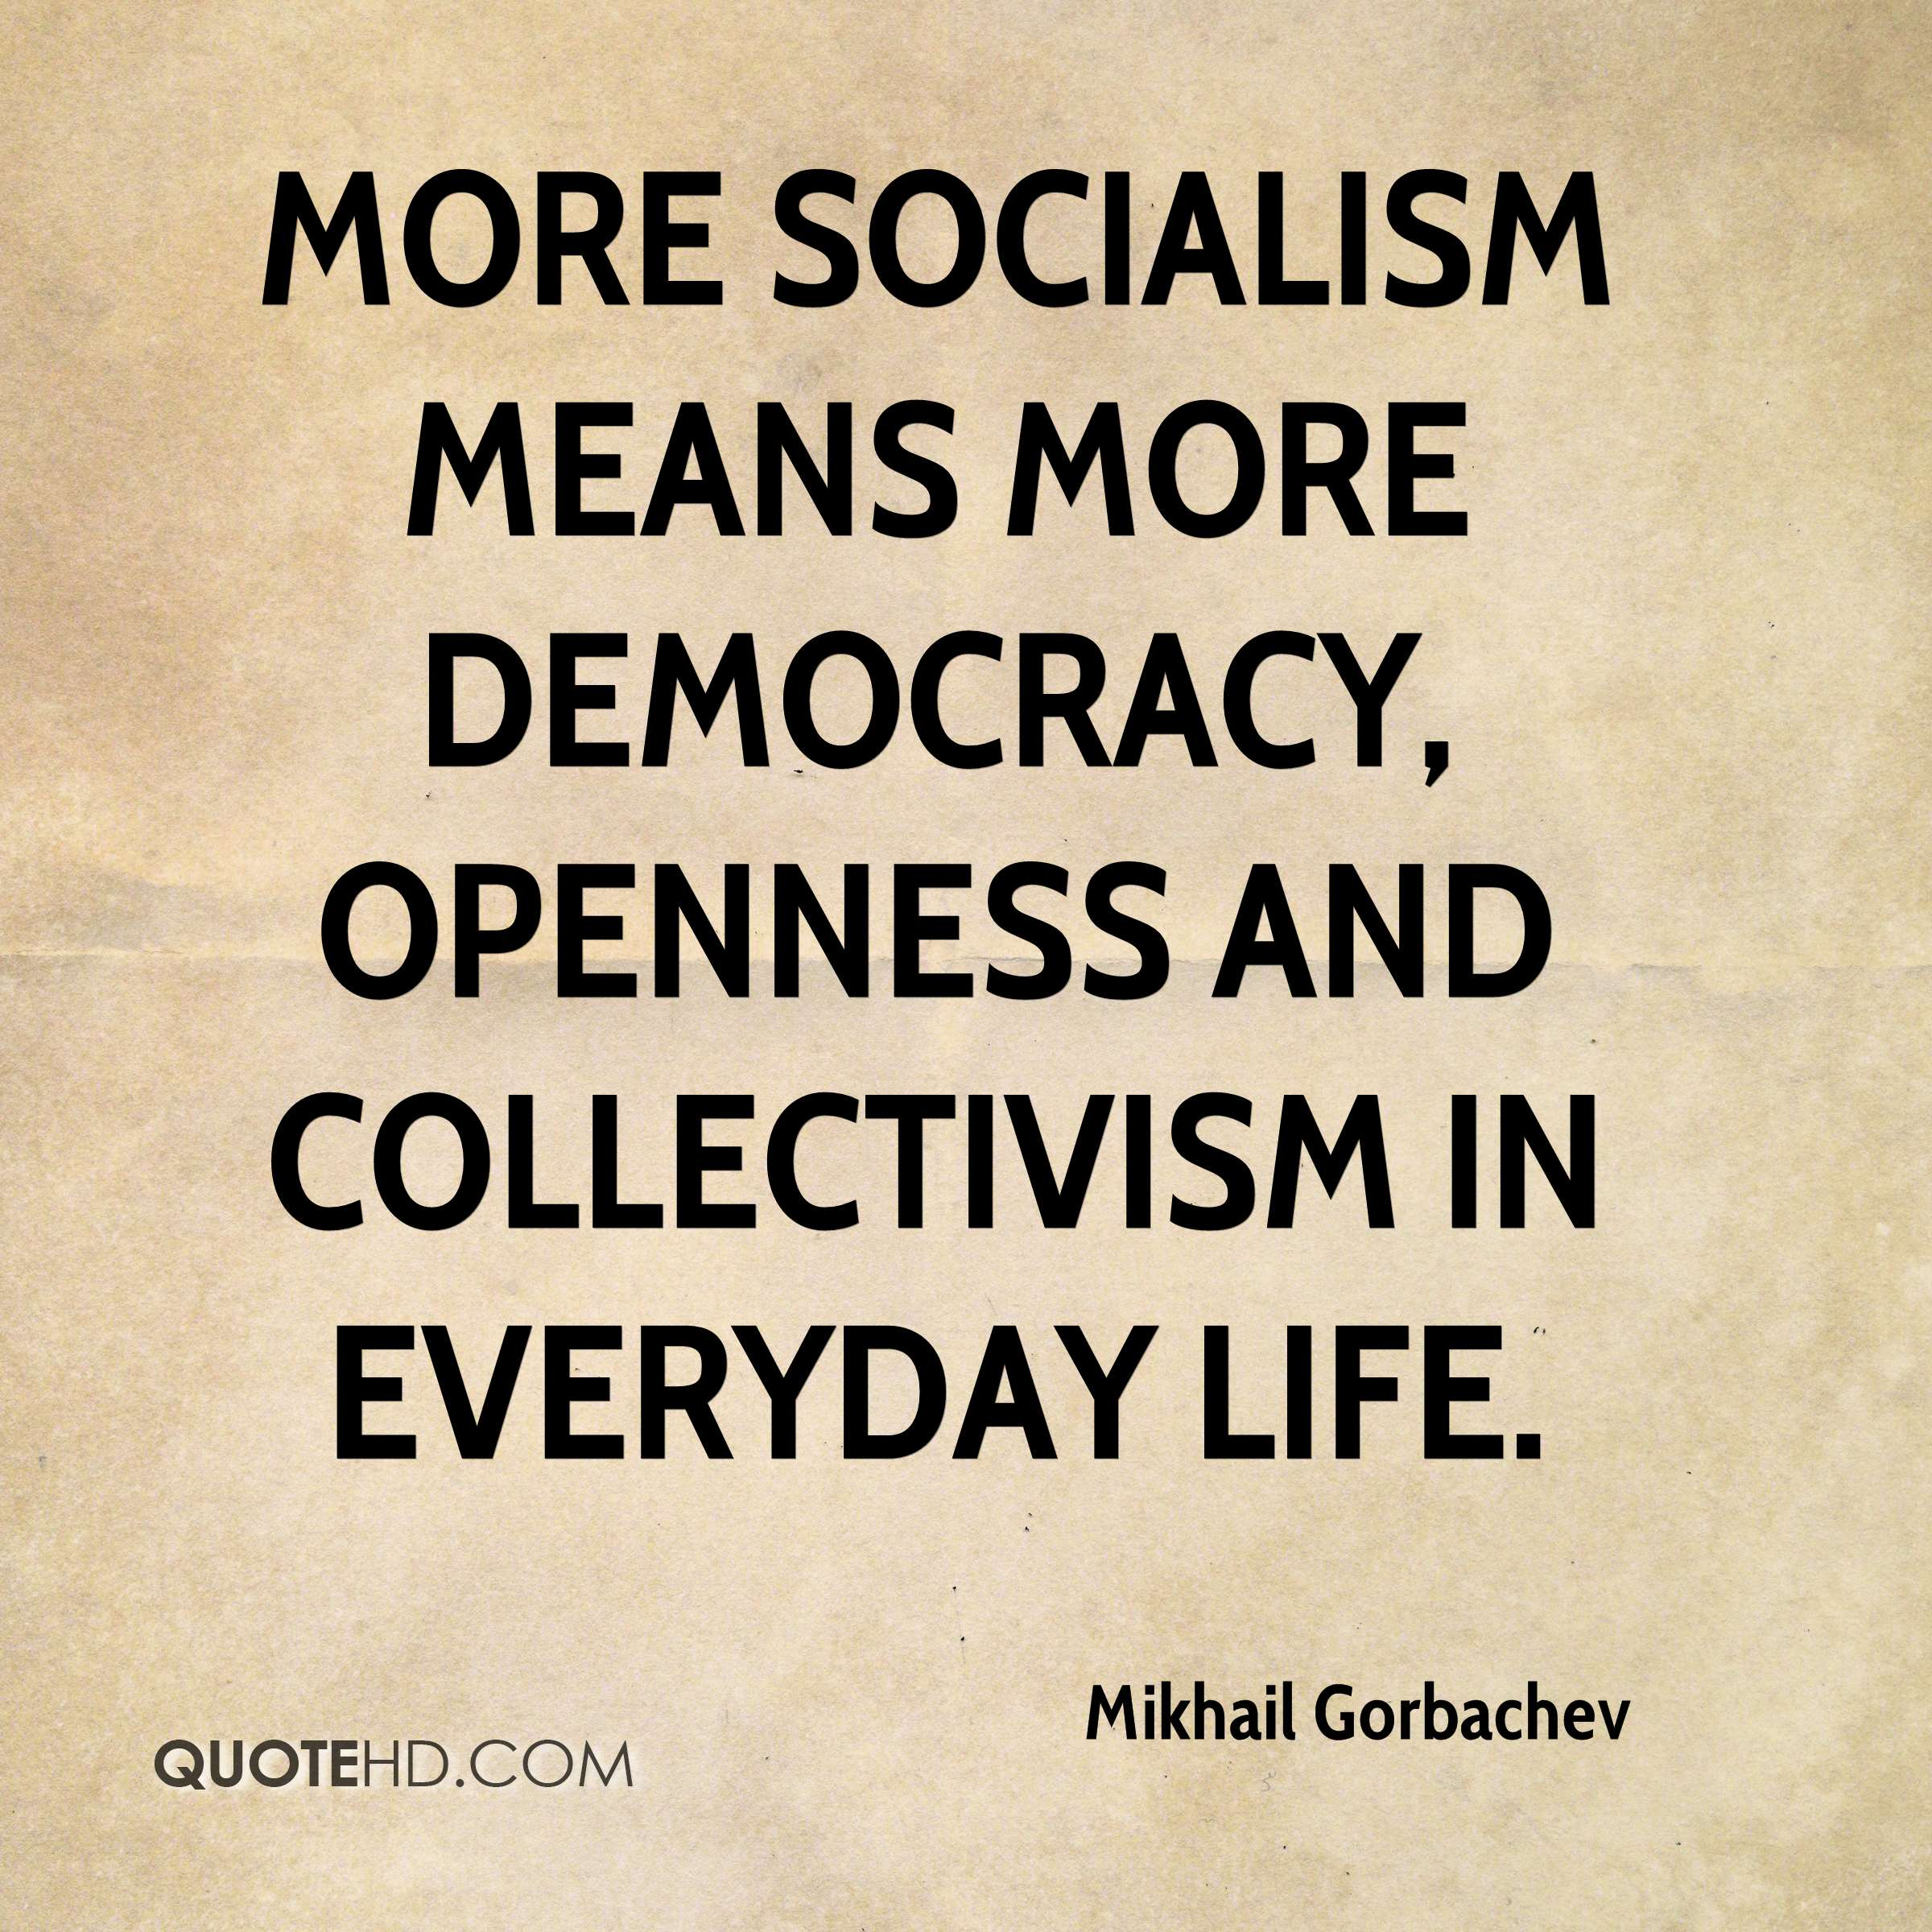 More socialism means more democracy, openness and collectivism in everyday life.